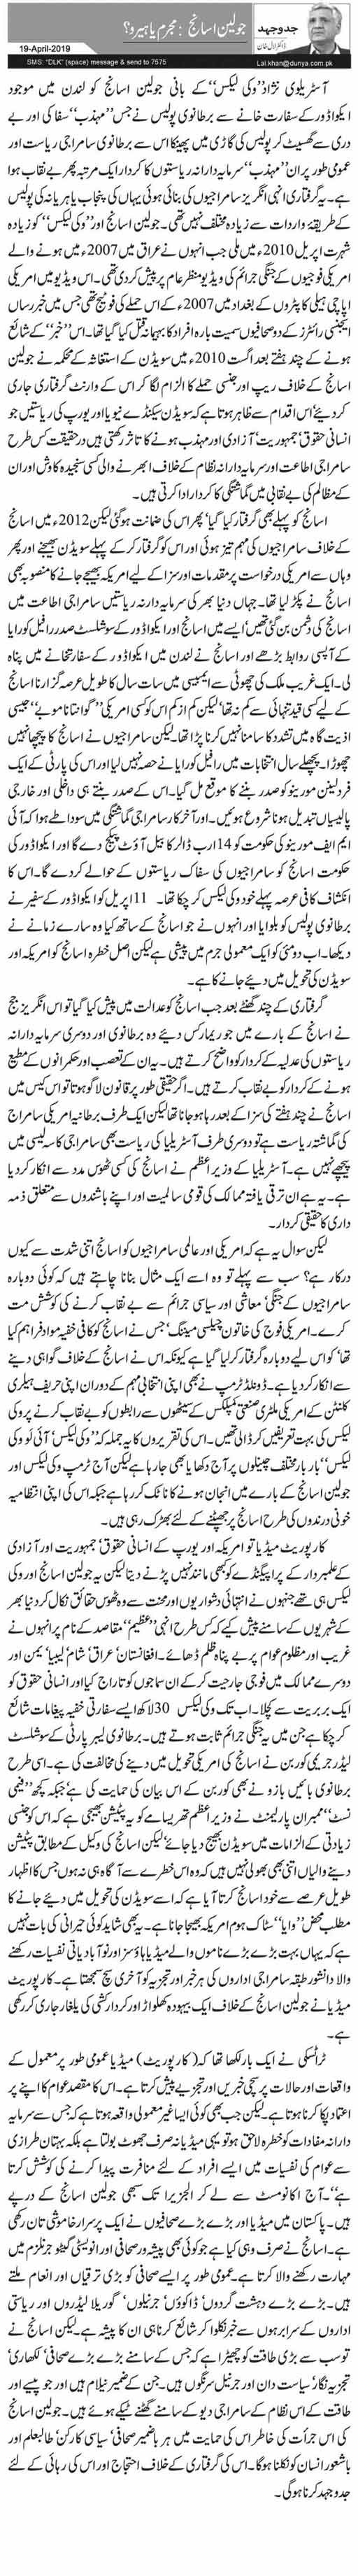 Julian Assange: Mujrim Ya Hero? | Dr. Lal Khan | Daily Urdu Columns